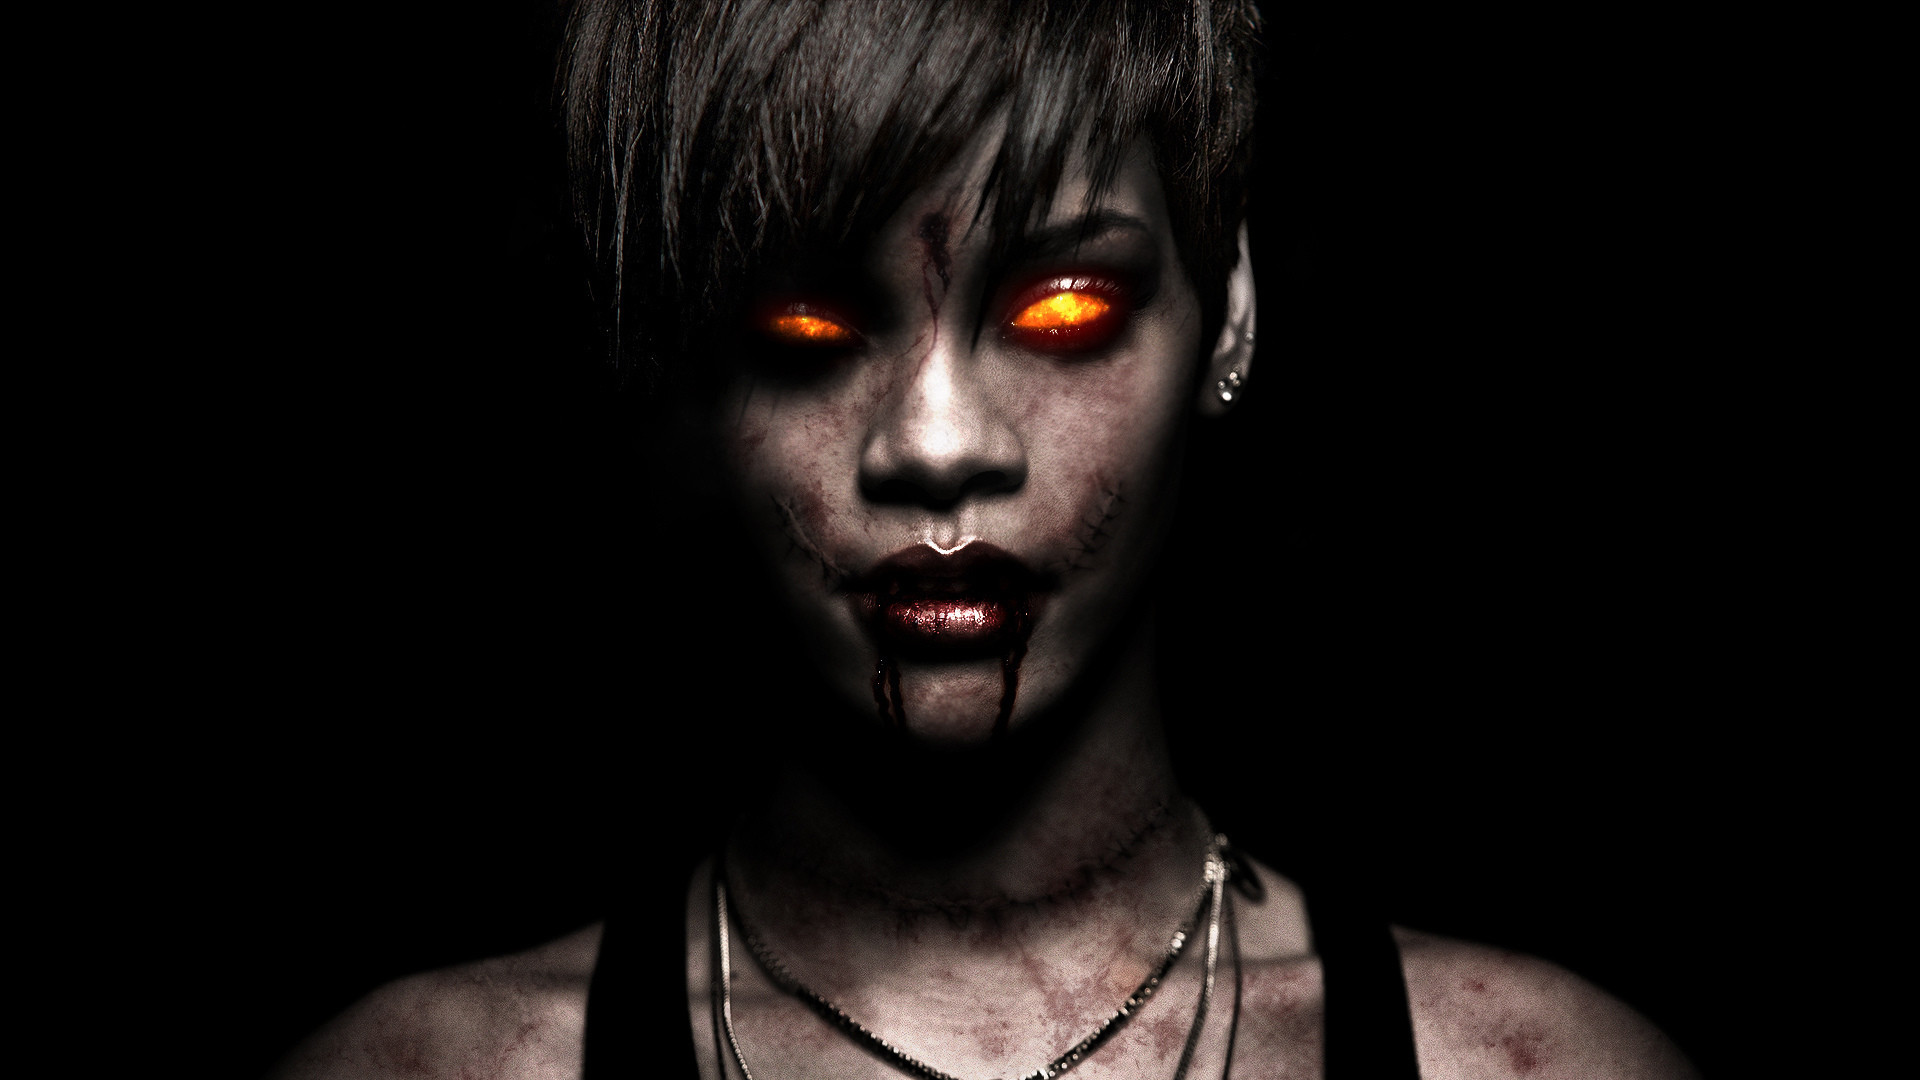 Sexy Scary Wallpaper 63 Images